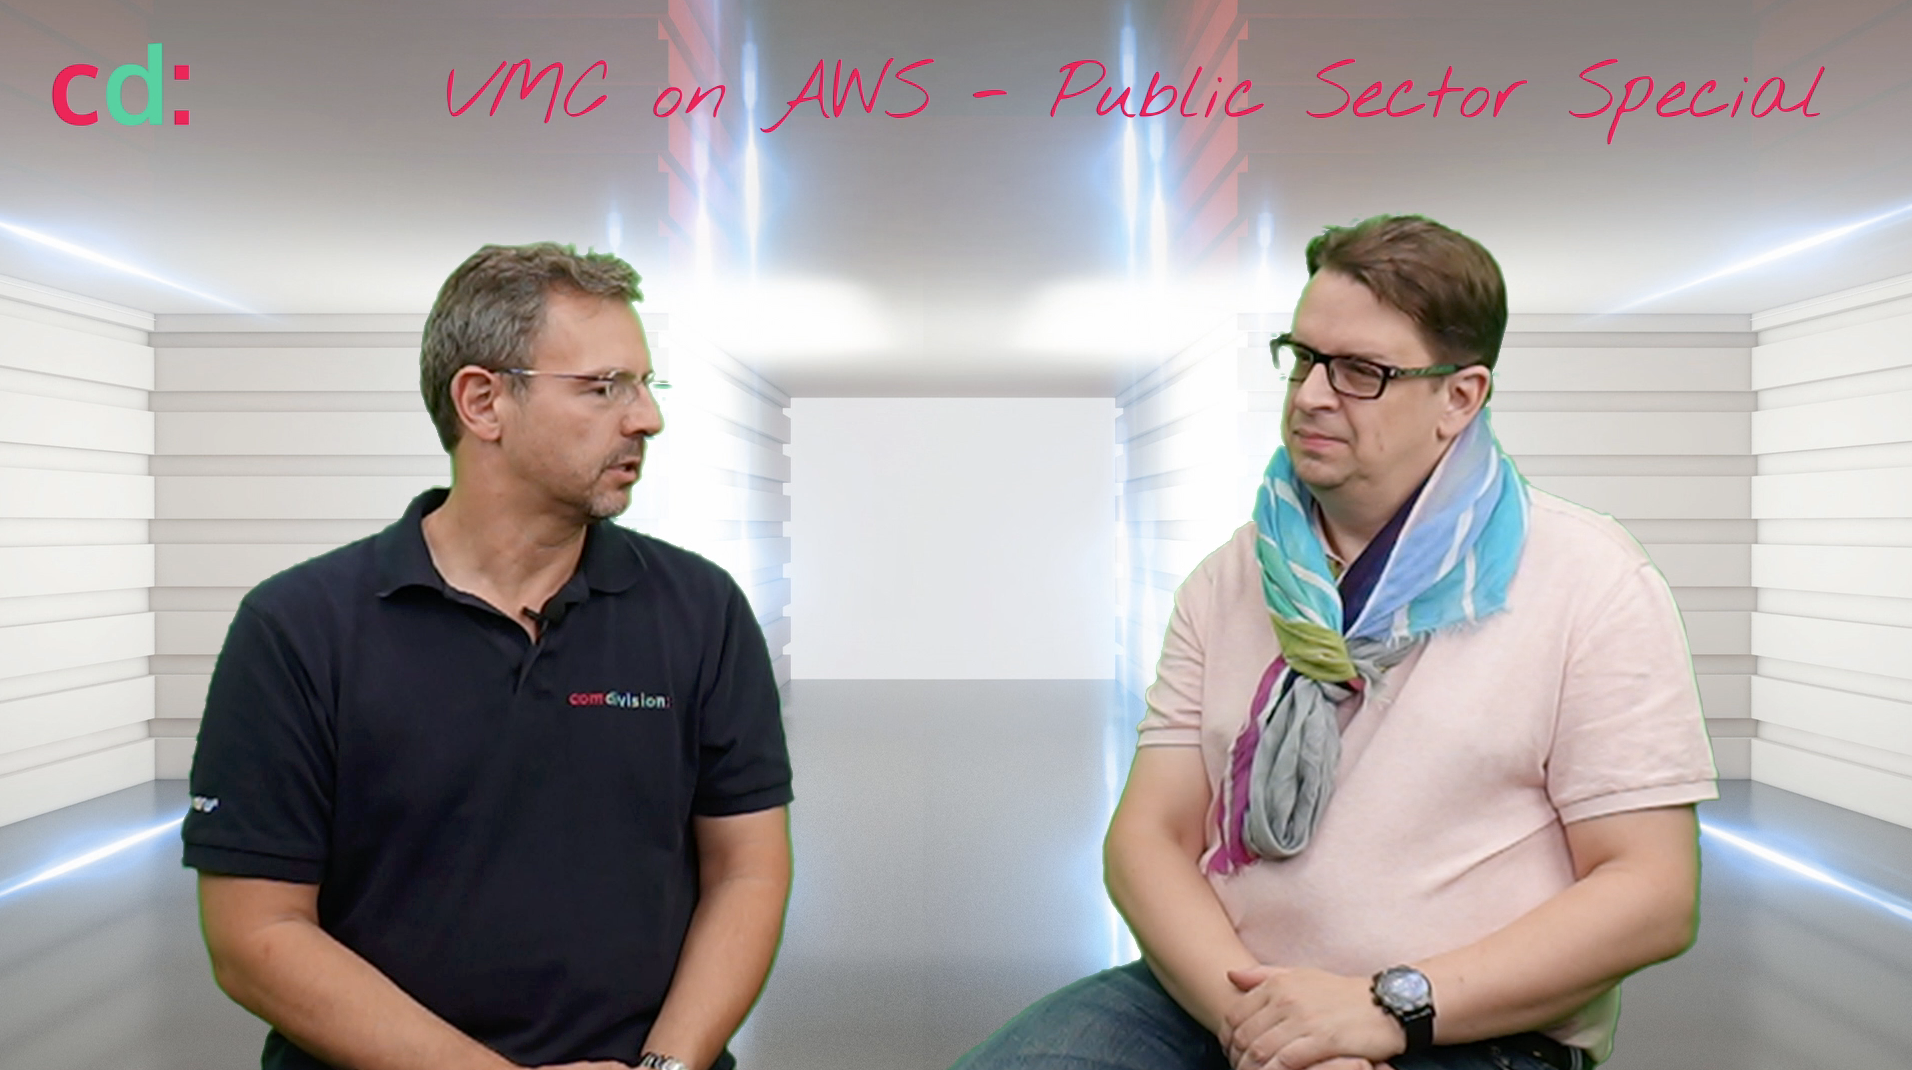 VMware Cloud on AWS - Public Sector - Die Umsetzung